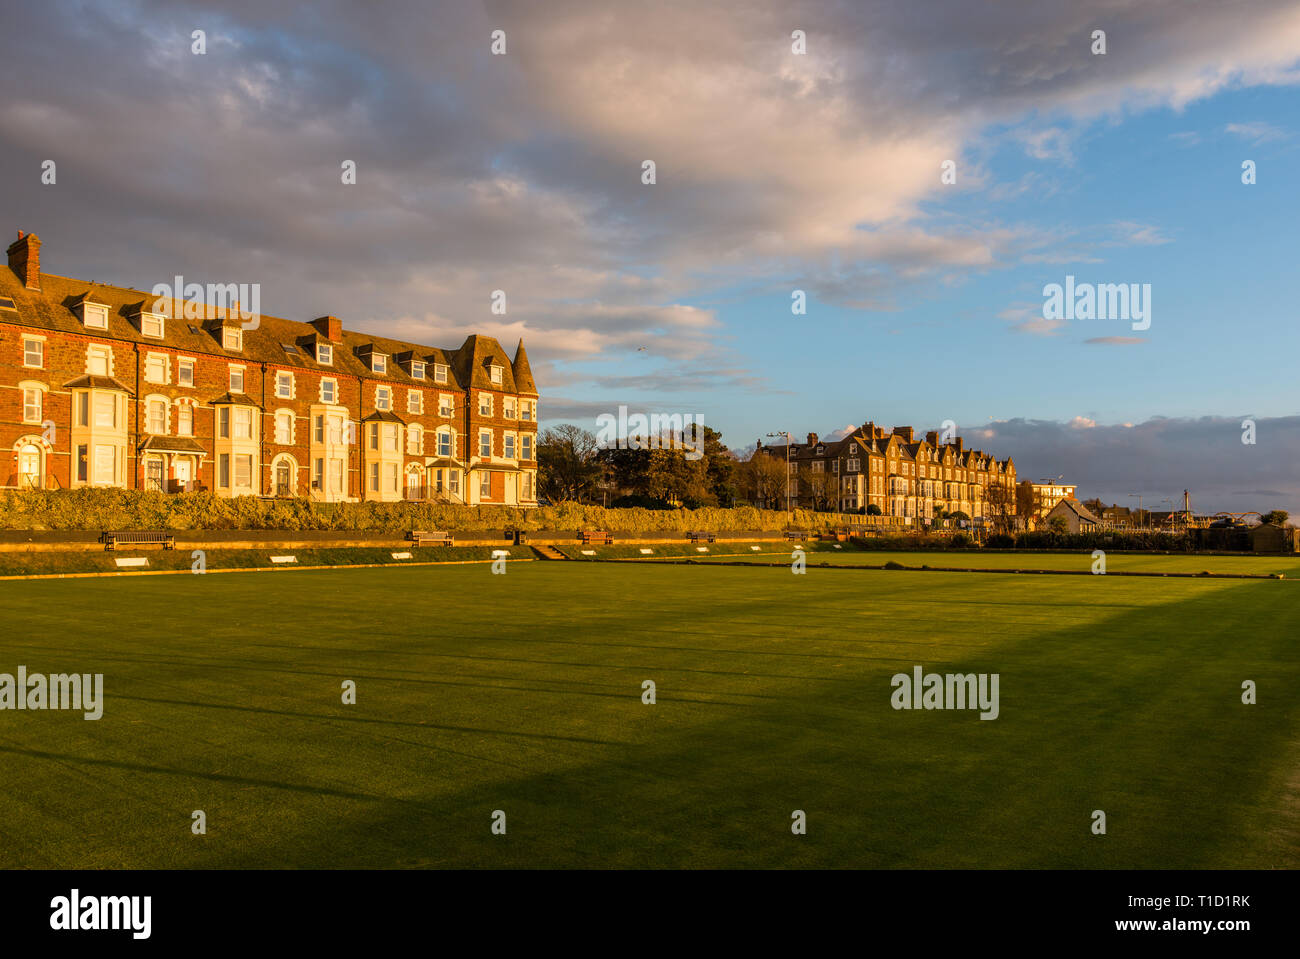 Cliff Parade bowling green and terrace of houses at Hunstanton warn late evening sun, Norfolk, East Anglia, England, UK. - Stock Image